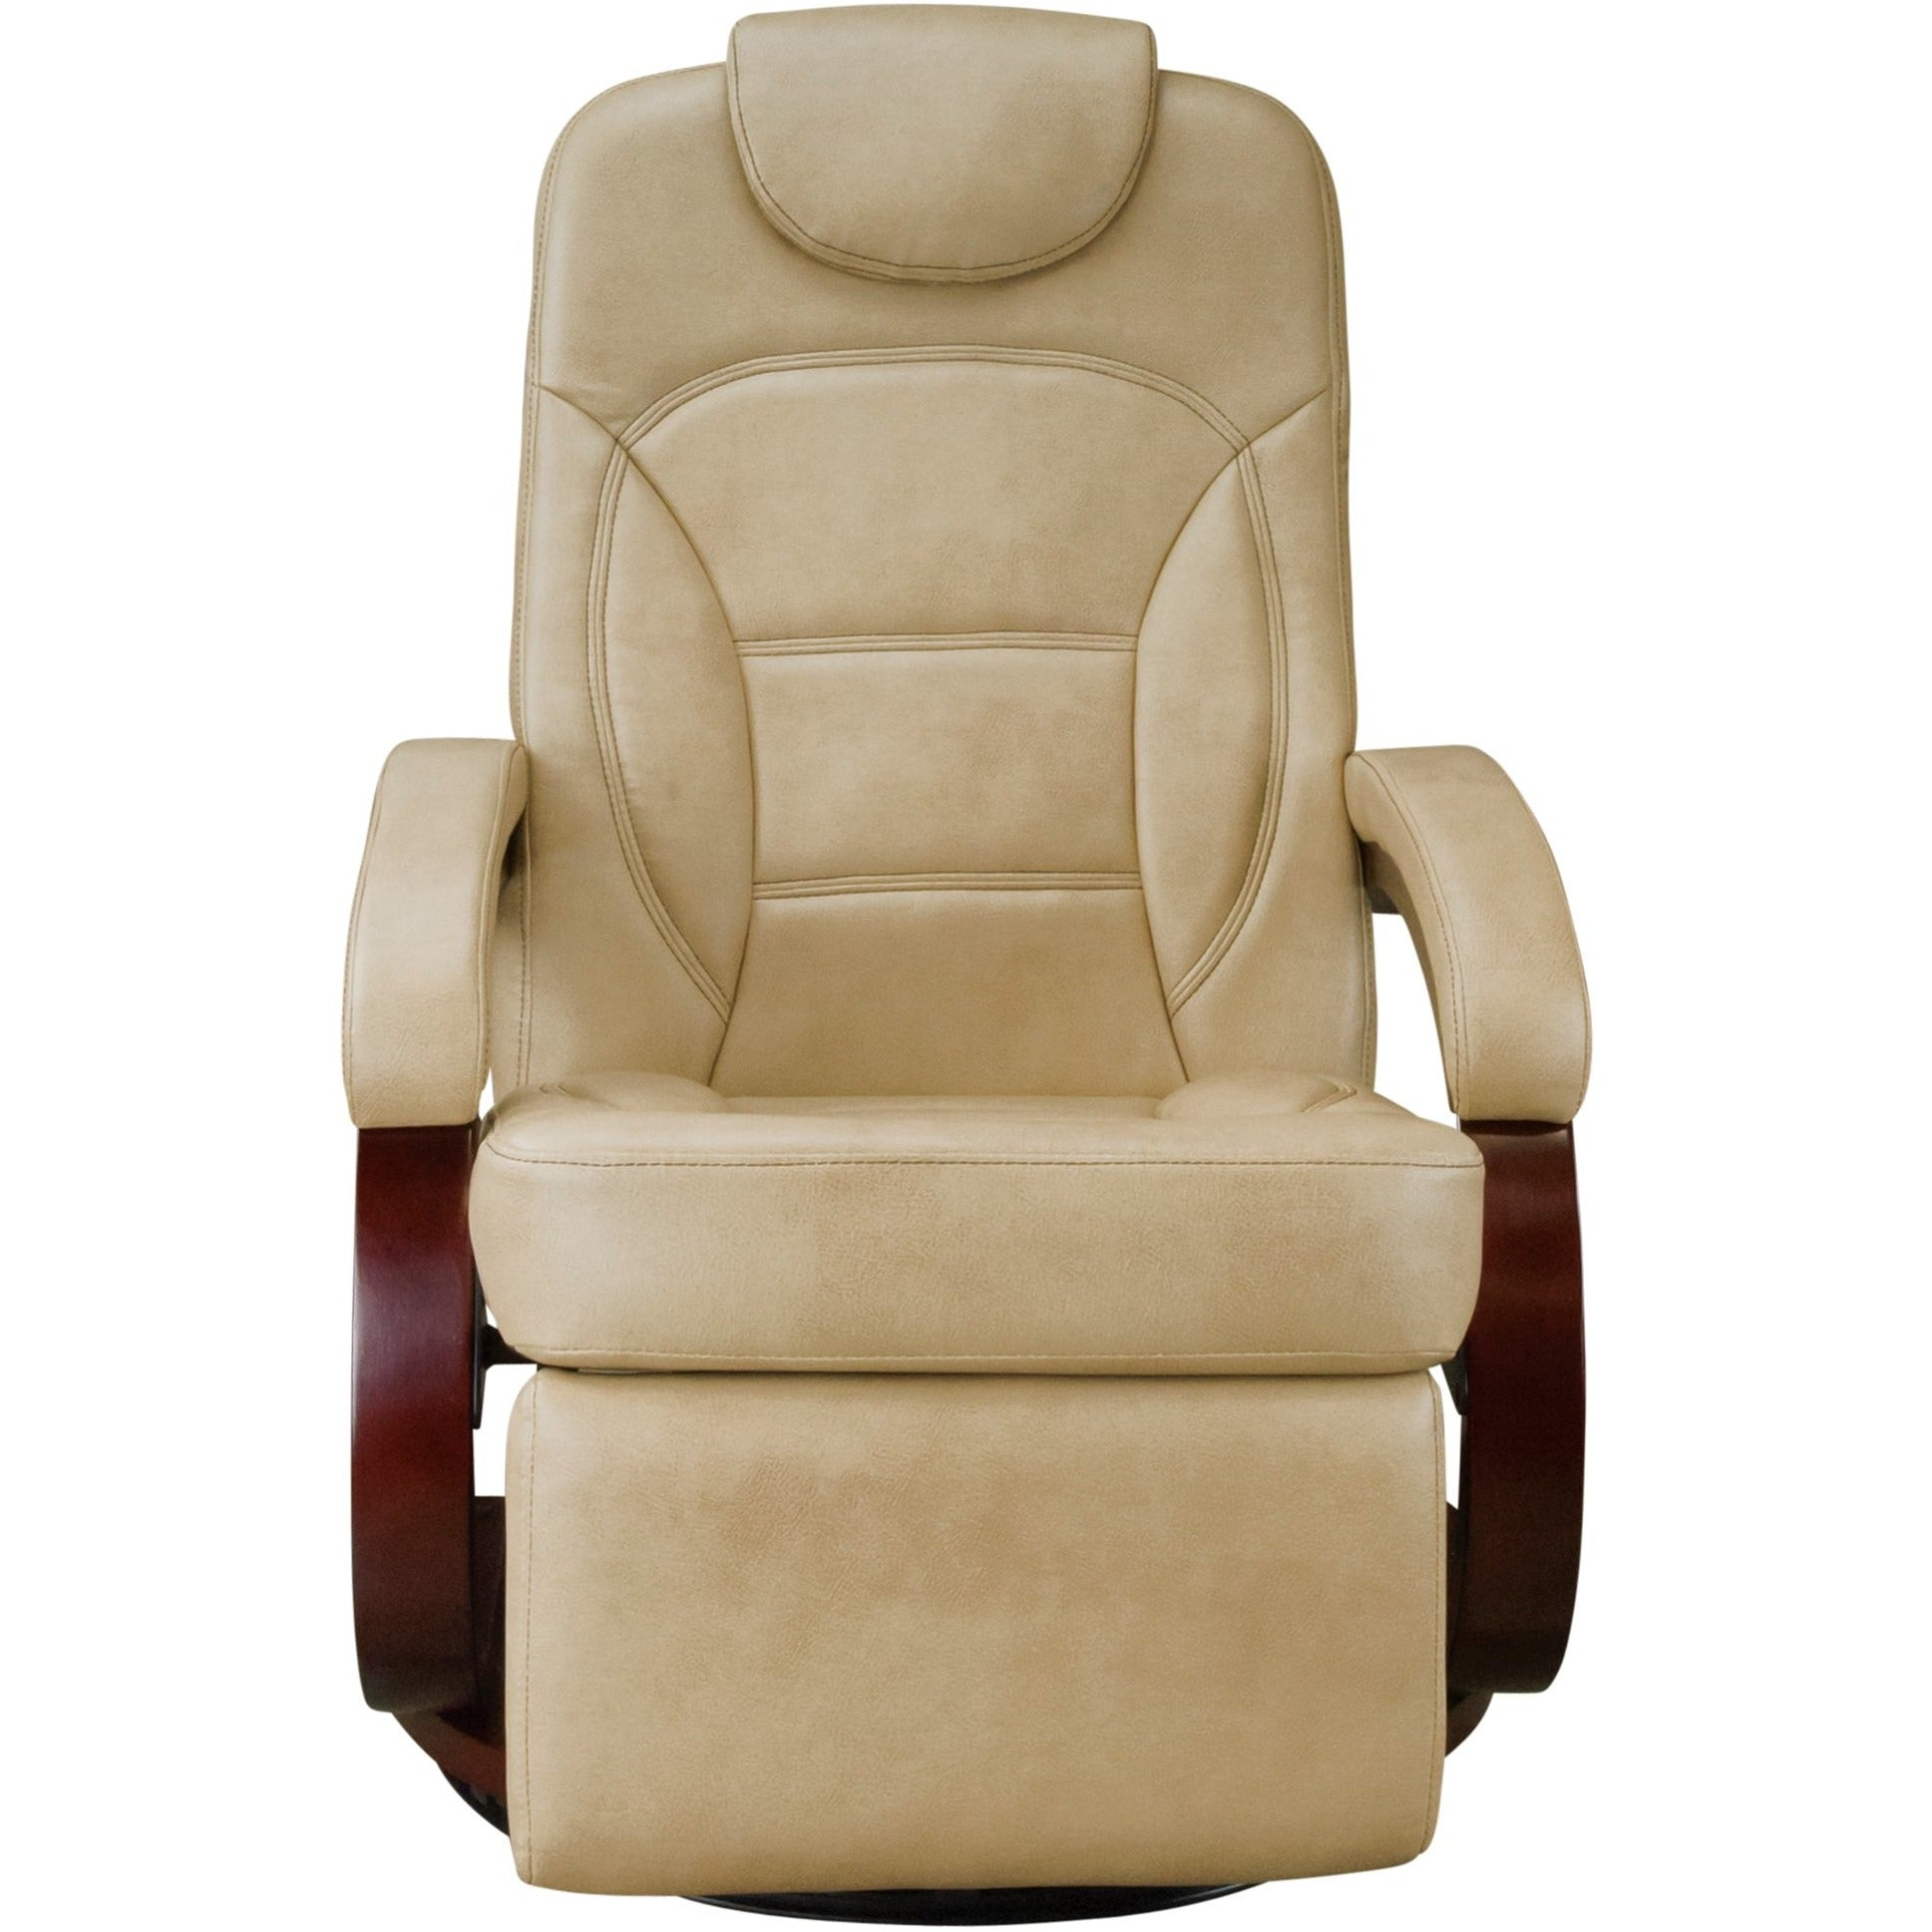 Lippert 3477221 Euro Chair in Latte (D)